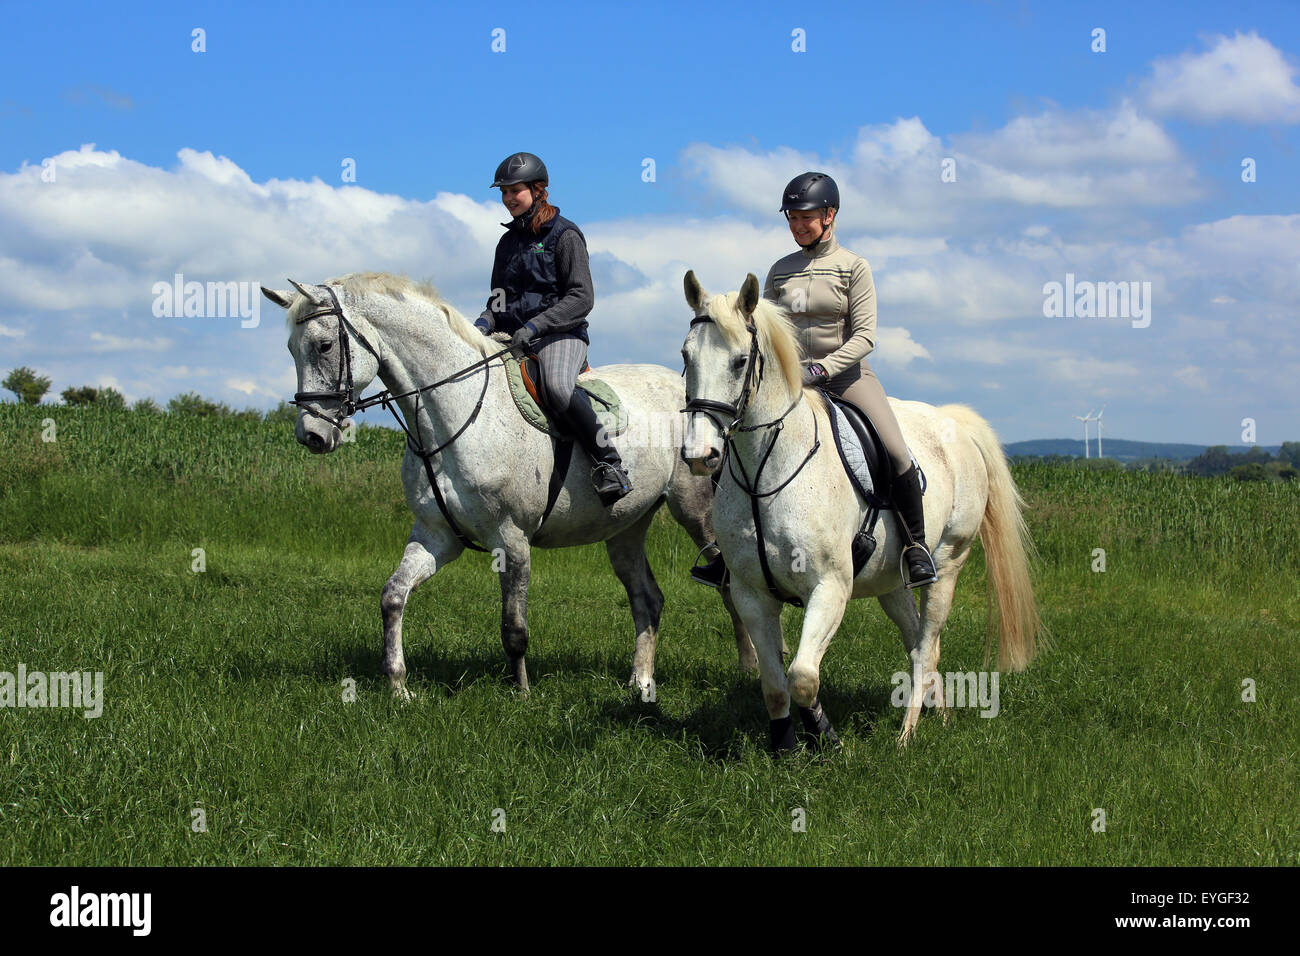 Mother Daughter Horseback Sports High Resolution Stock Photography And Images Alamy